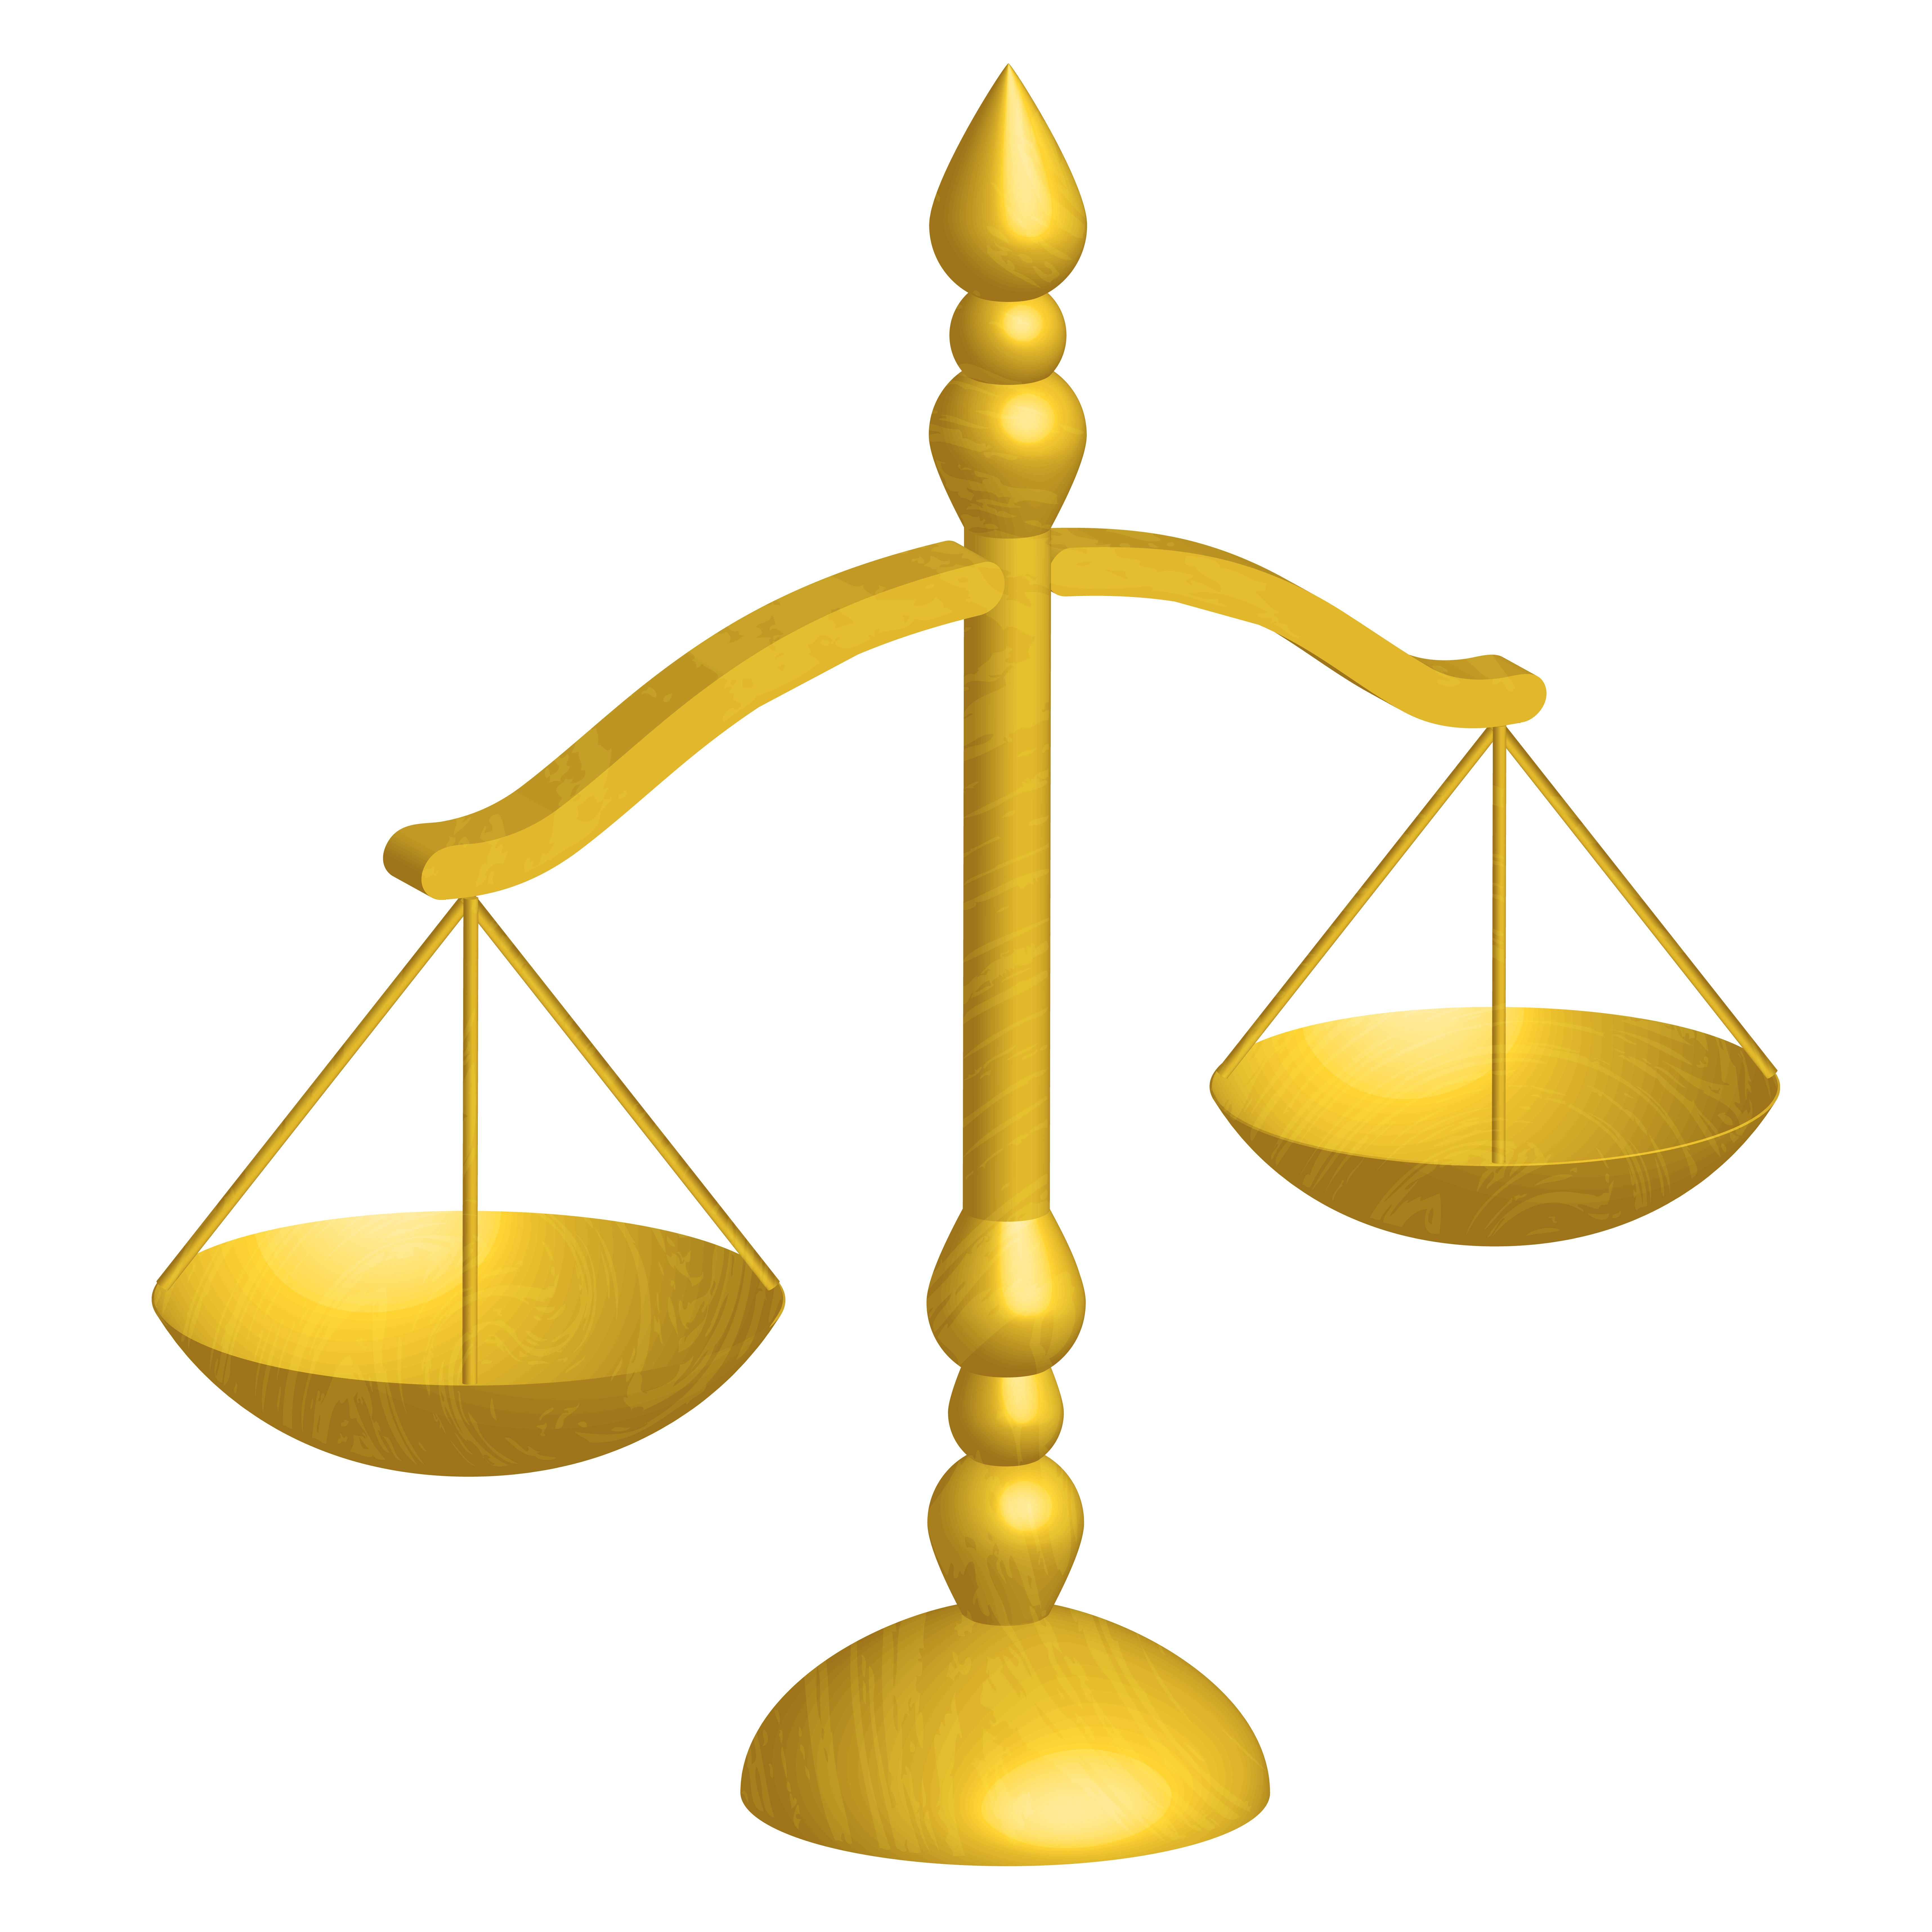 legal scales clipart - photo #2